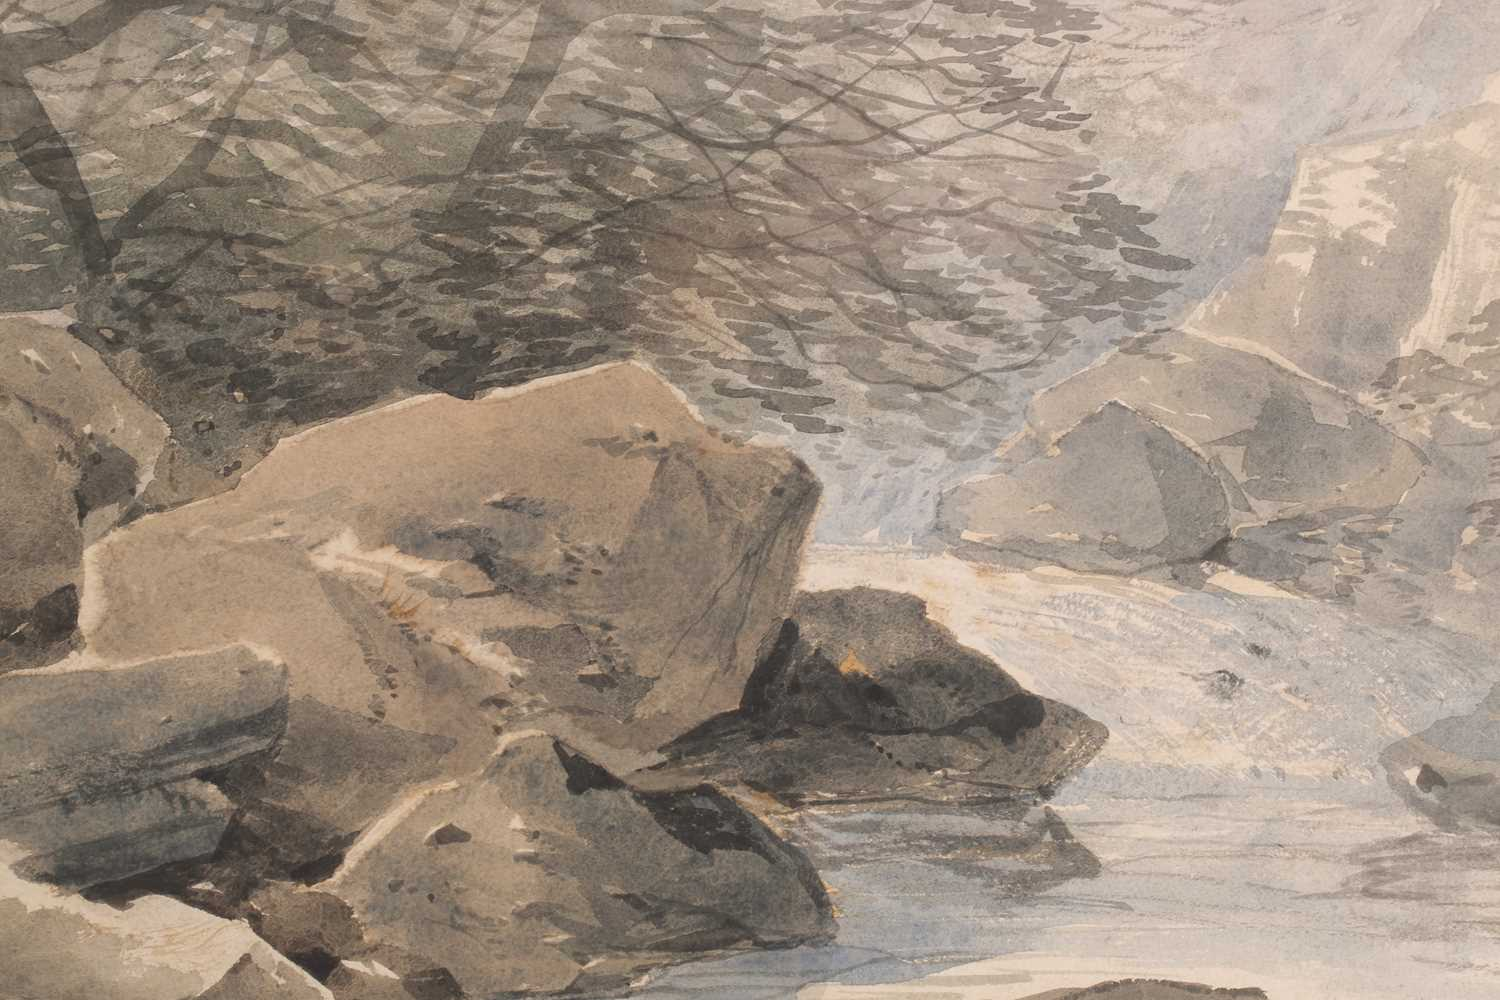 Robert Leman (1799-1863) British, 'The Beck at Llanberis', watercolour, 31 cm x 41 cm, together with - Image 5 of 5